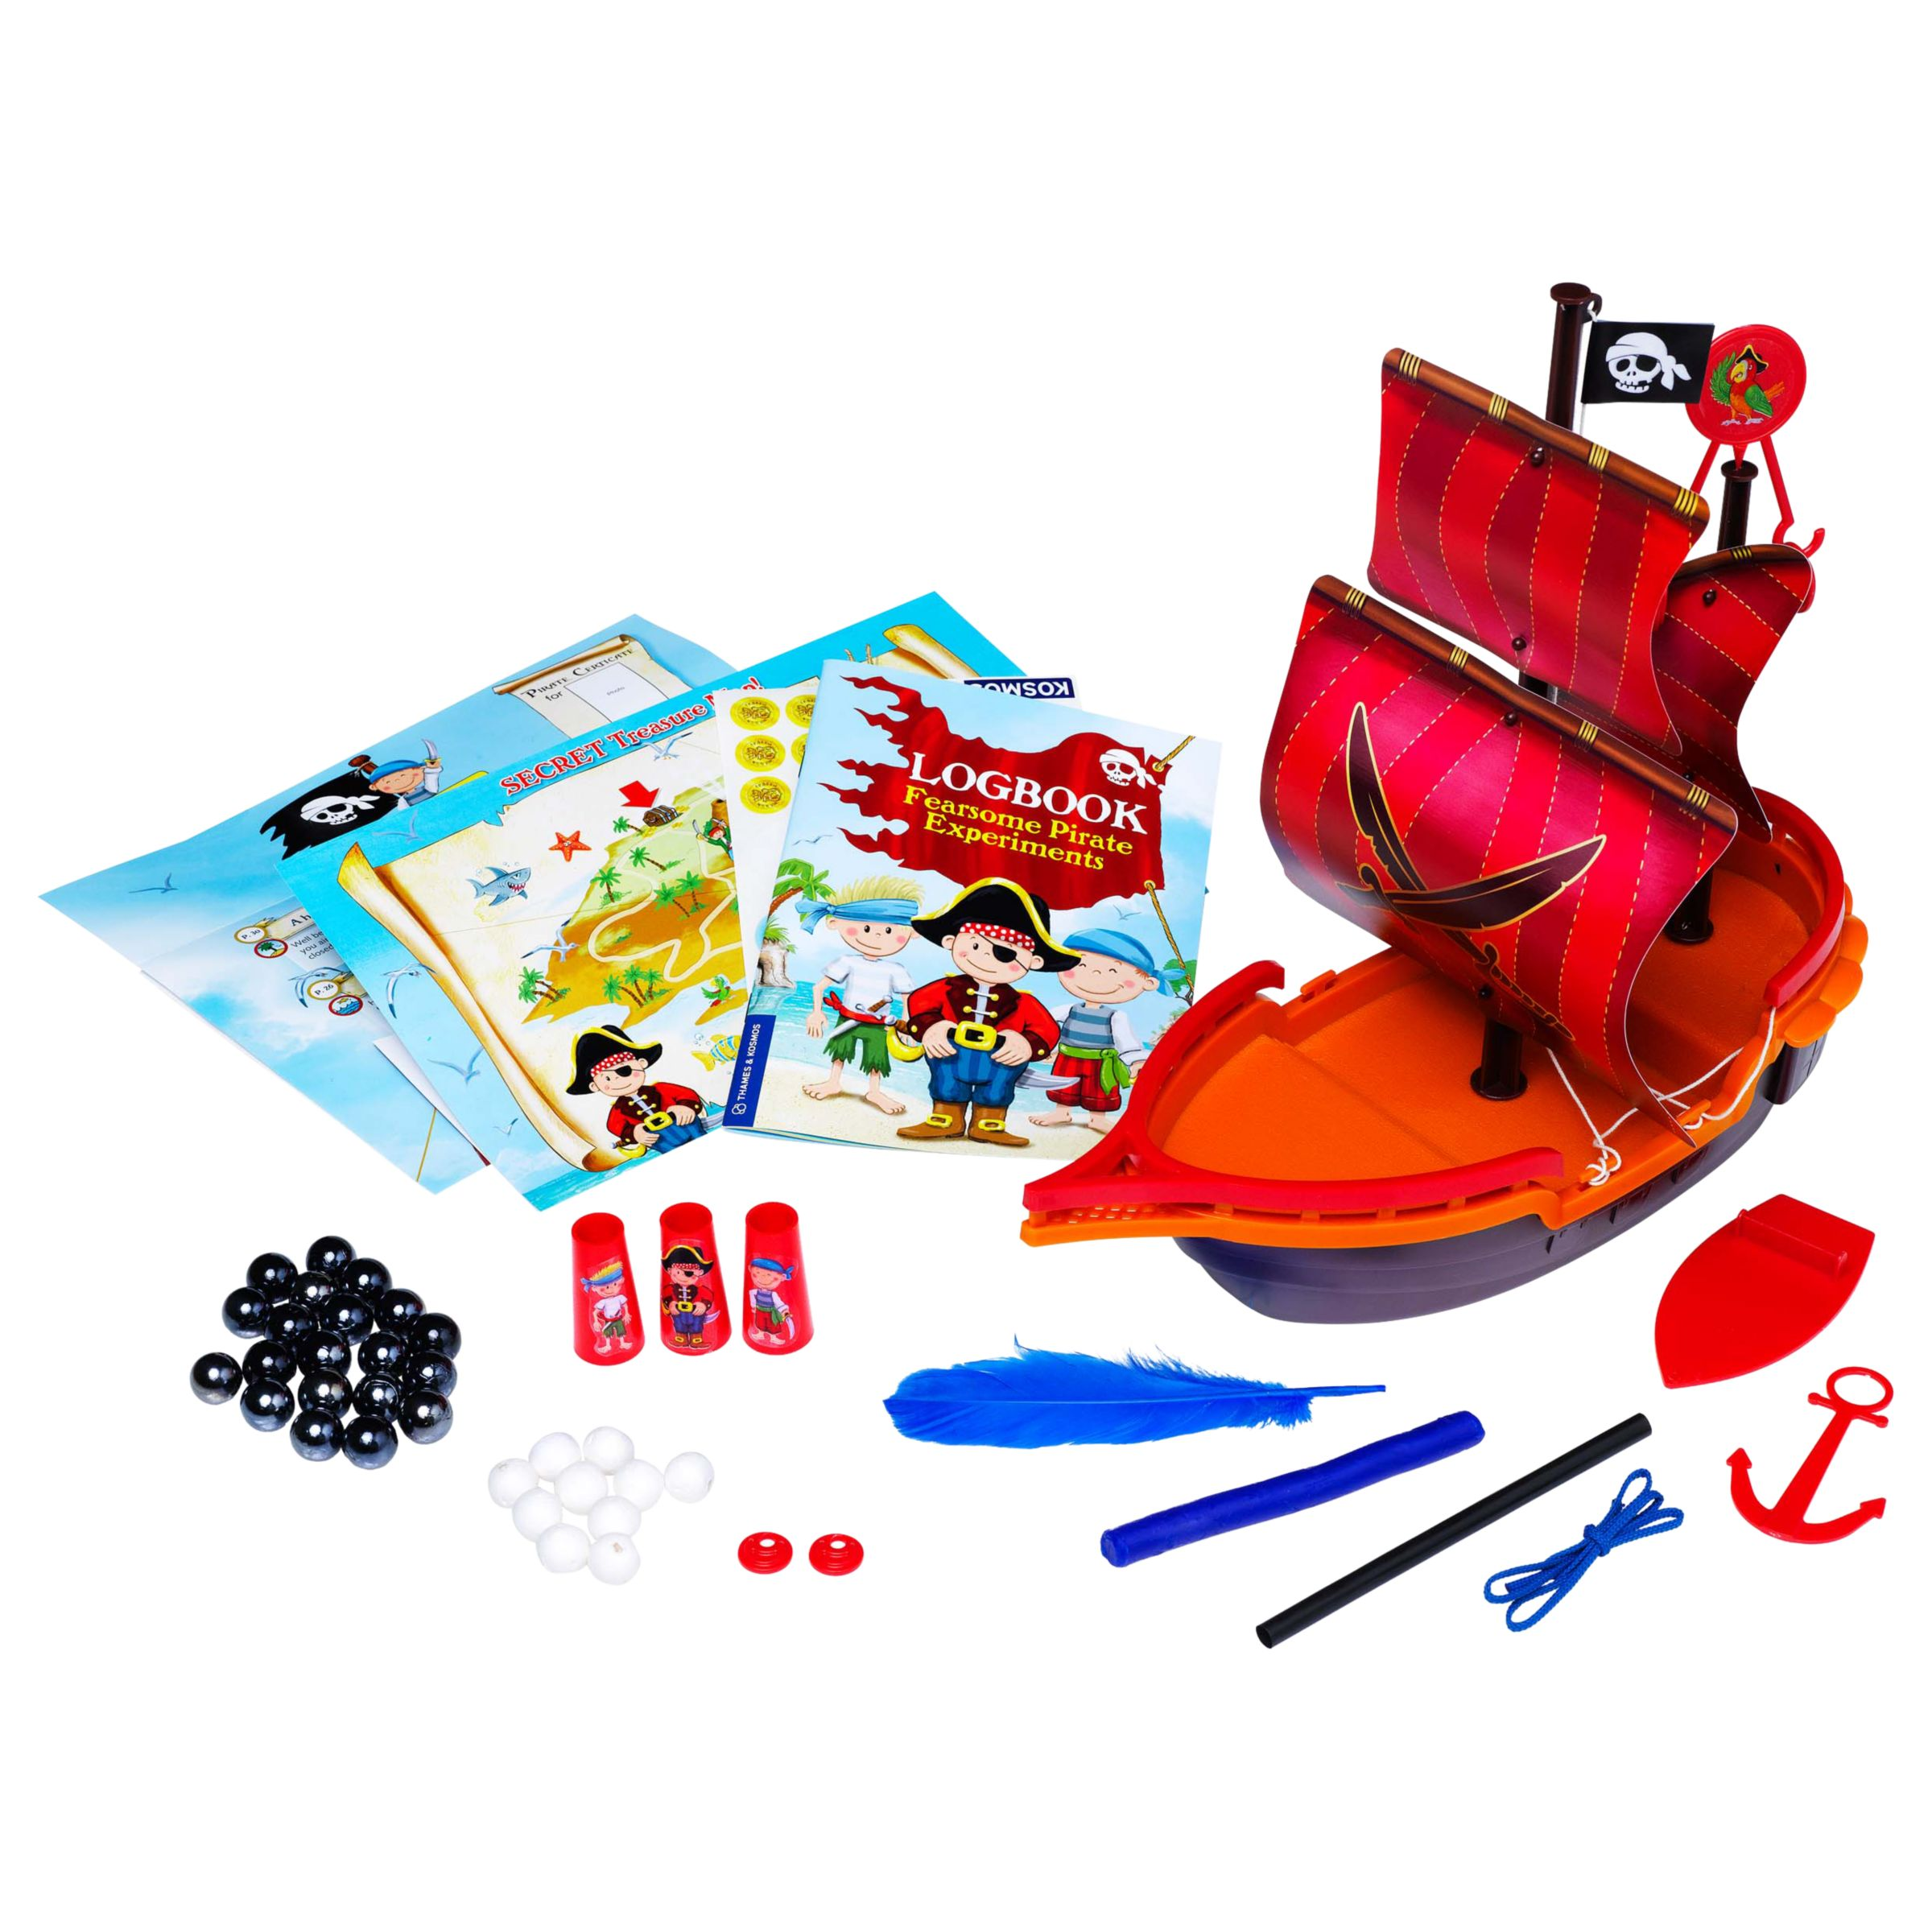 Thames & Kosmos Thames & Kosmos Pirate Ship Experiment Kit